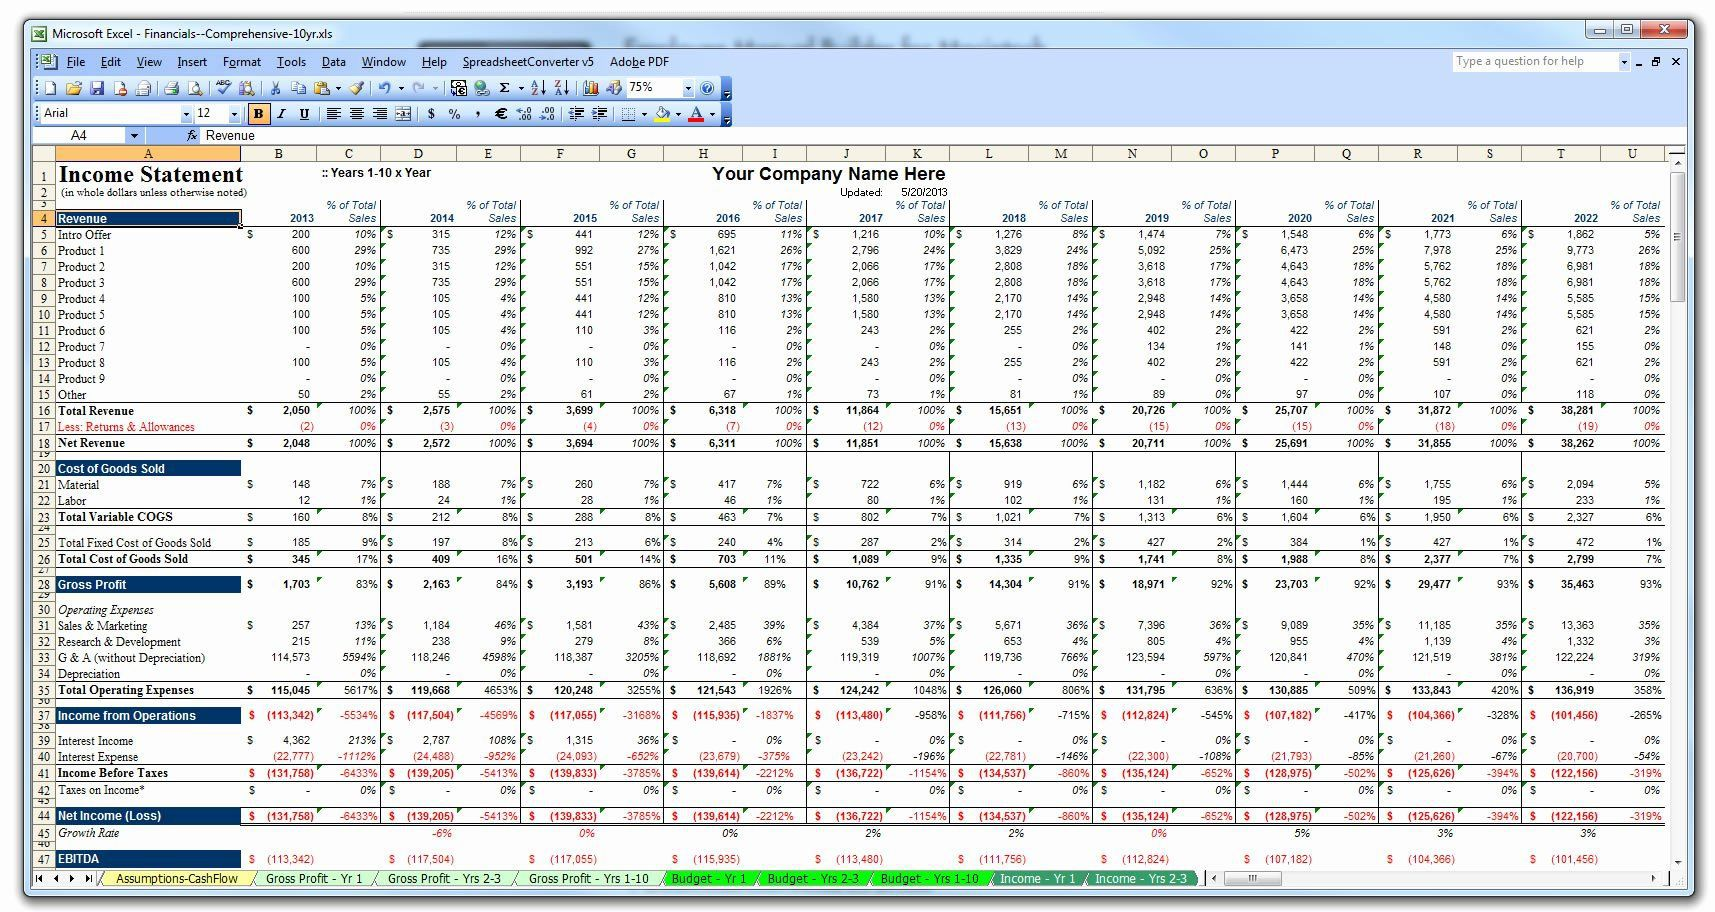 002 Top Busines Plan Template Excel Photo  Financial Free ContinuityFull